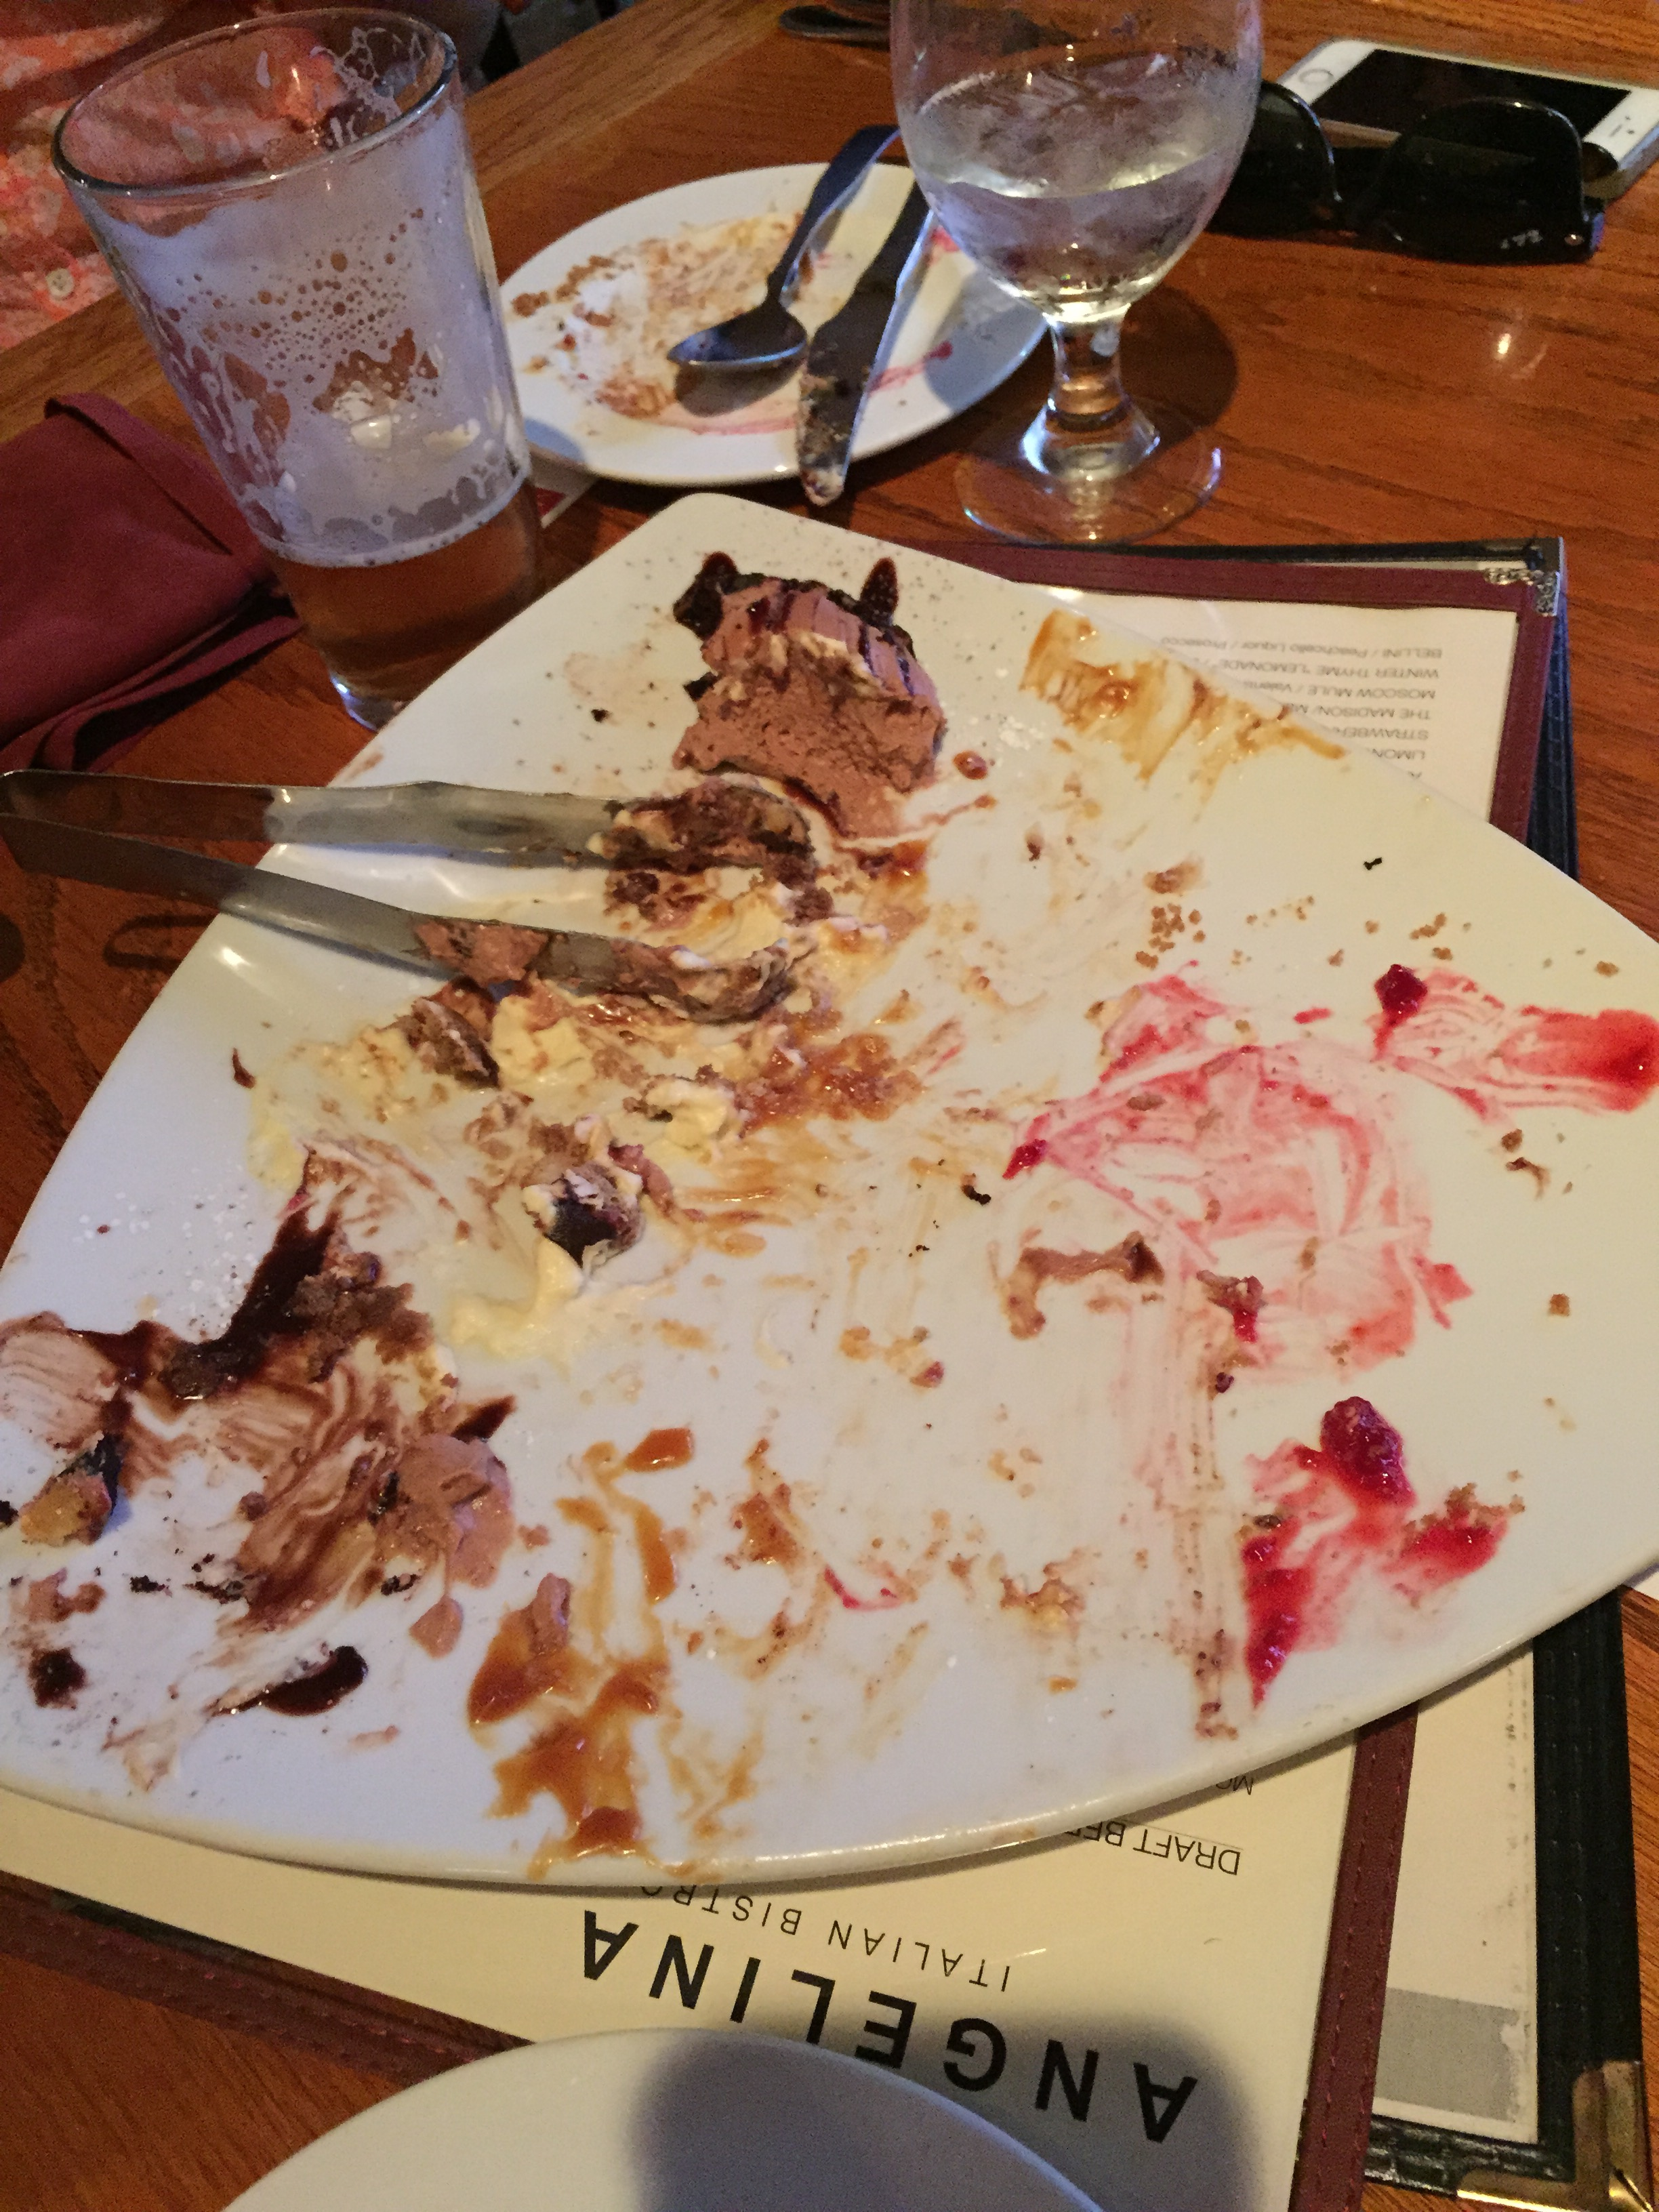 Dessert at  Angelina Italian Bistro  was eaten before we could even snap a picture.